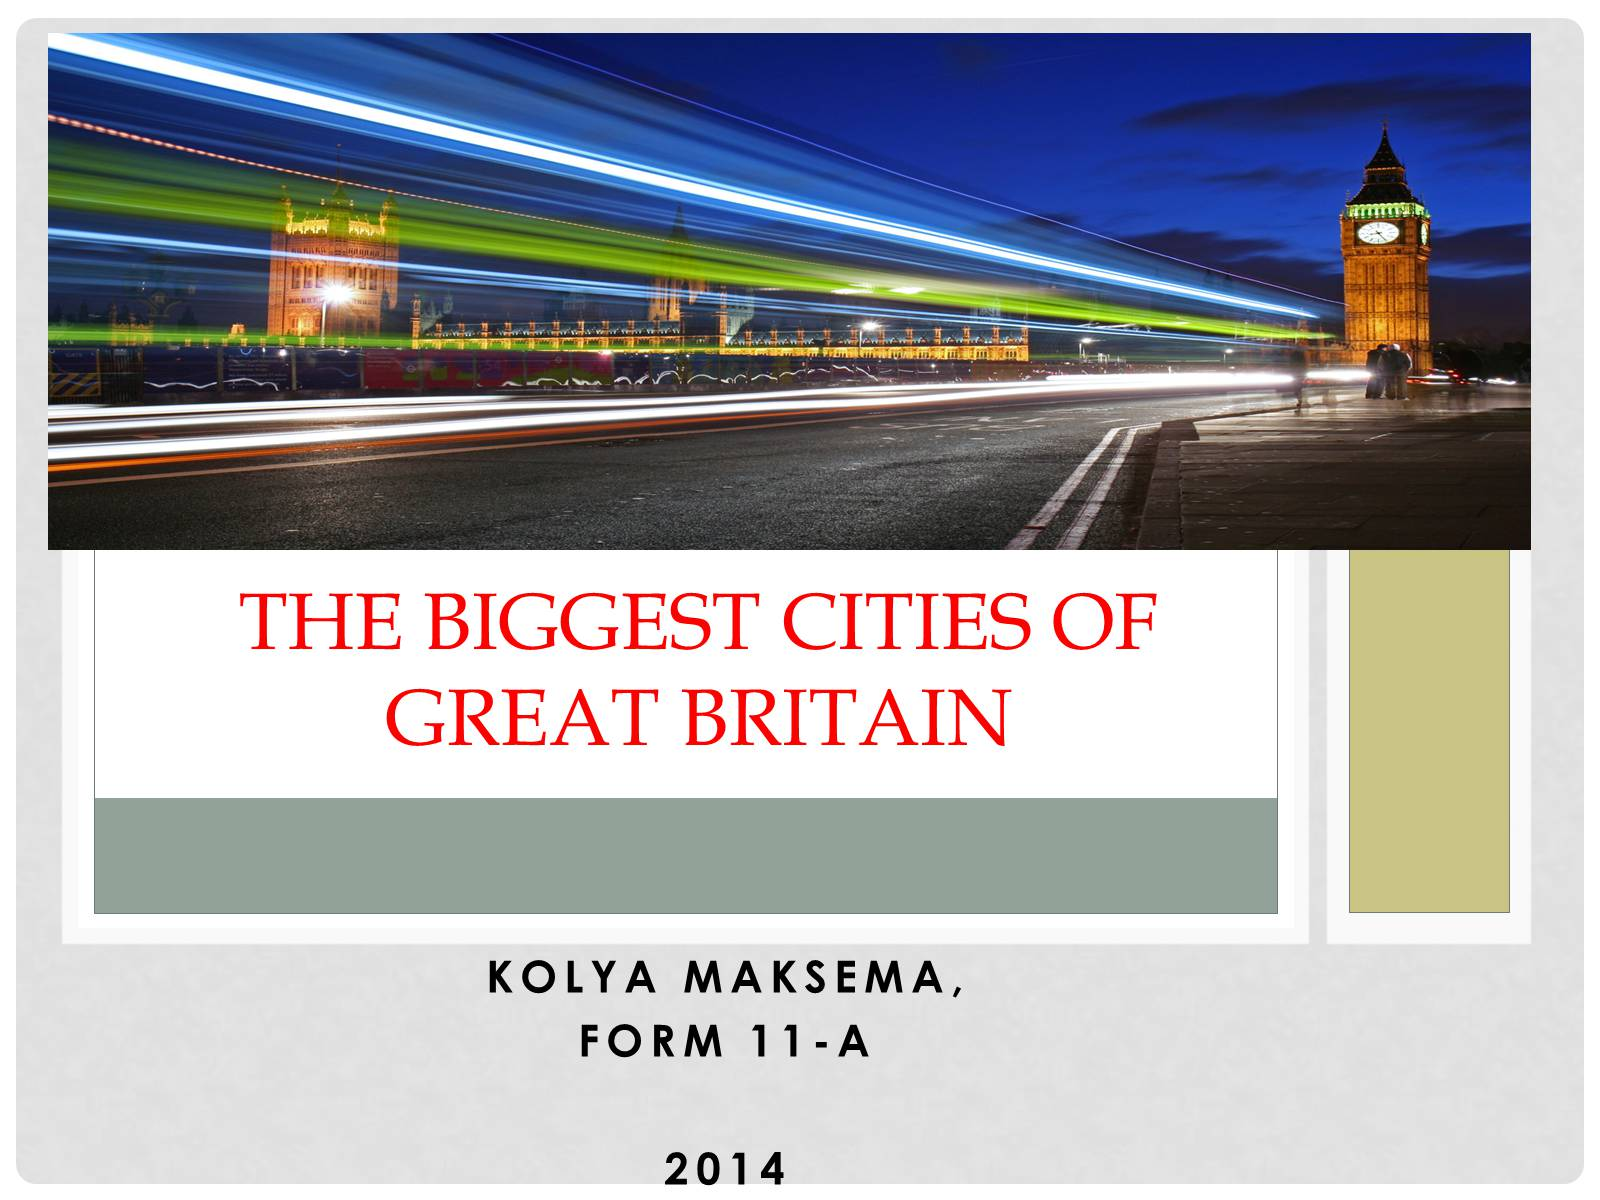 Презентація на тему «The biggest cities of Great Britain»